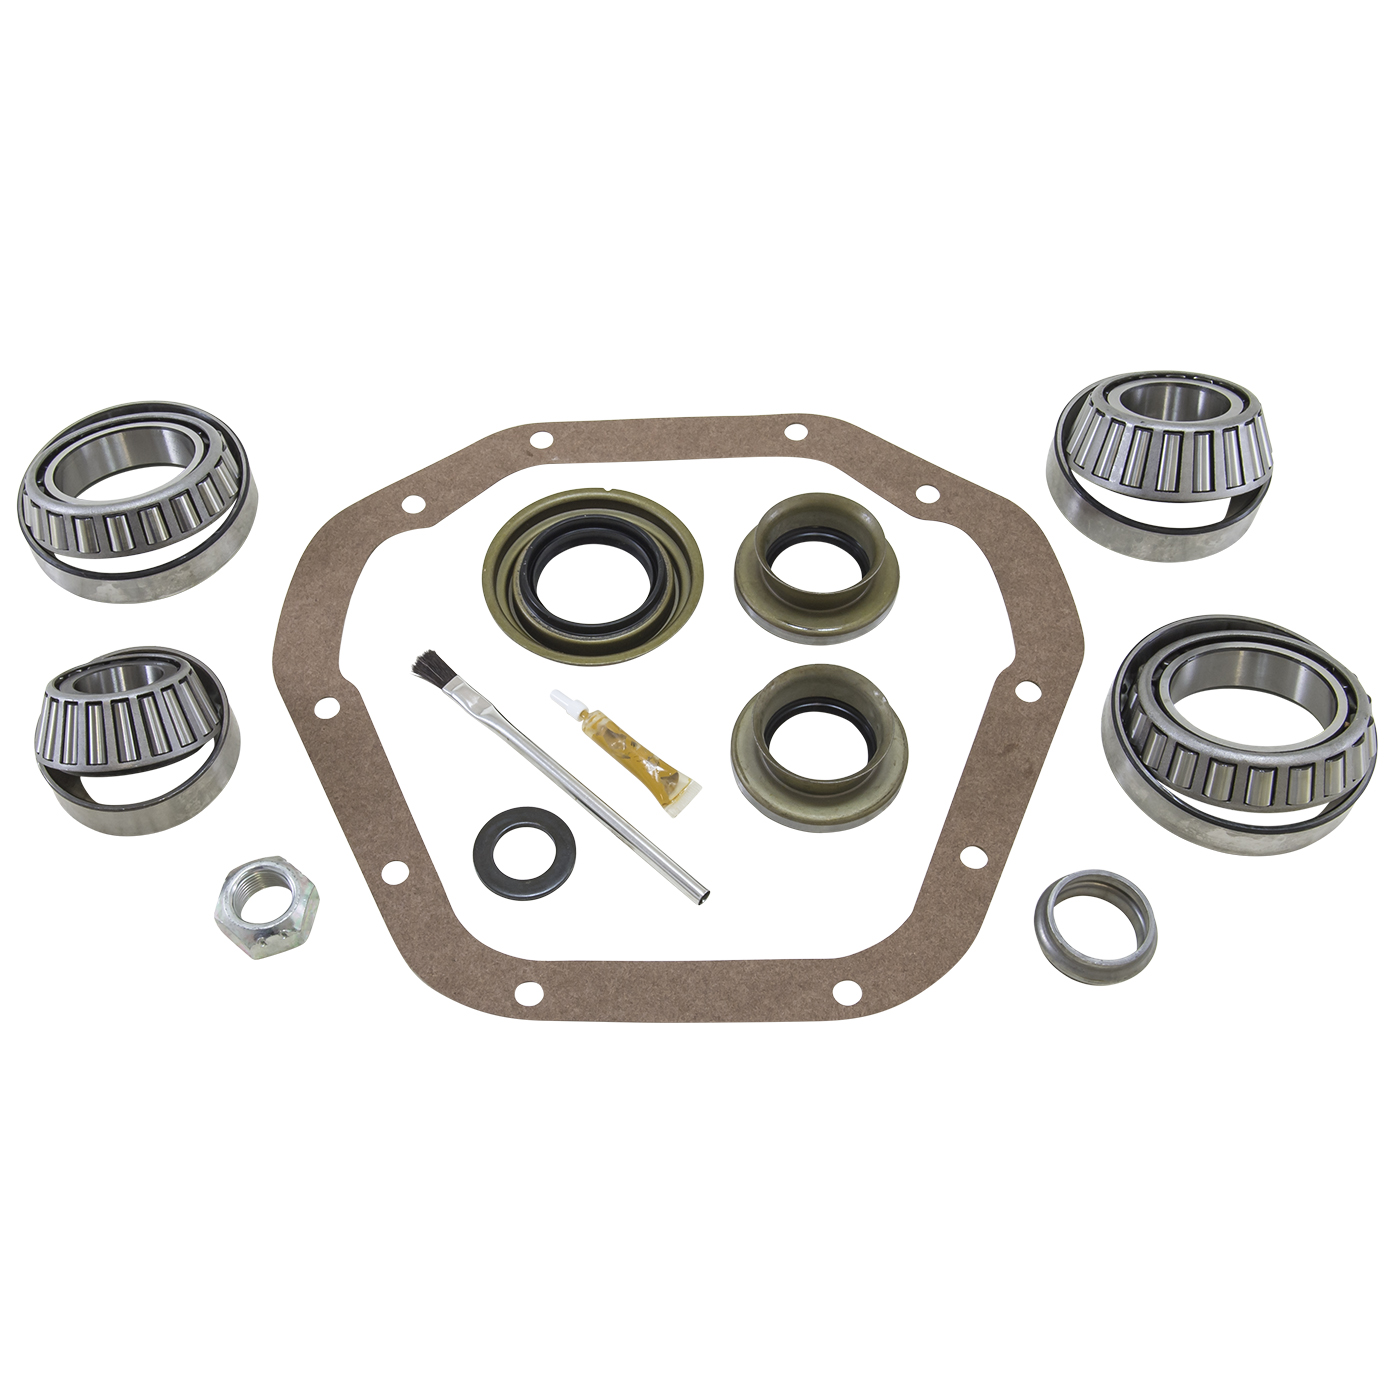 BK D60-SUP - Yukon Bearing Kit for D60 Super Front Differential